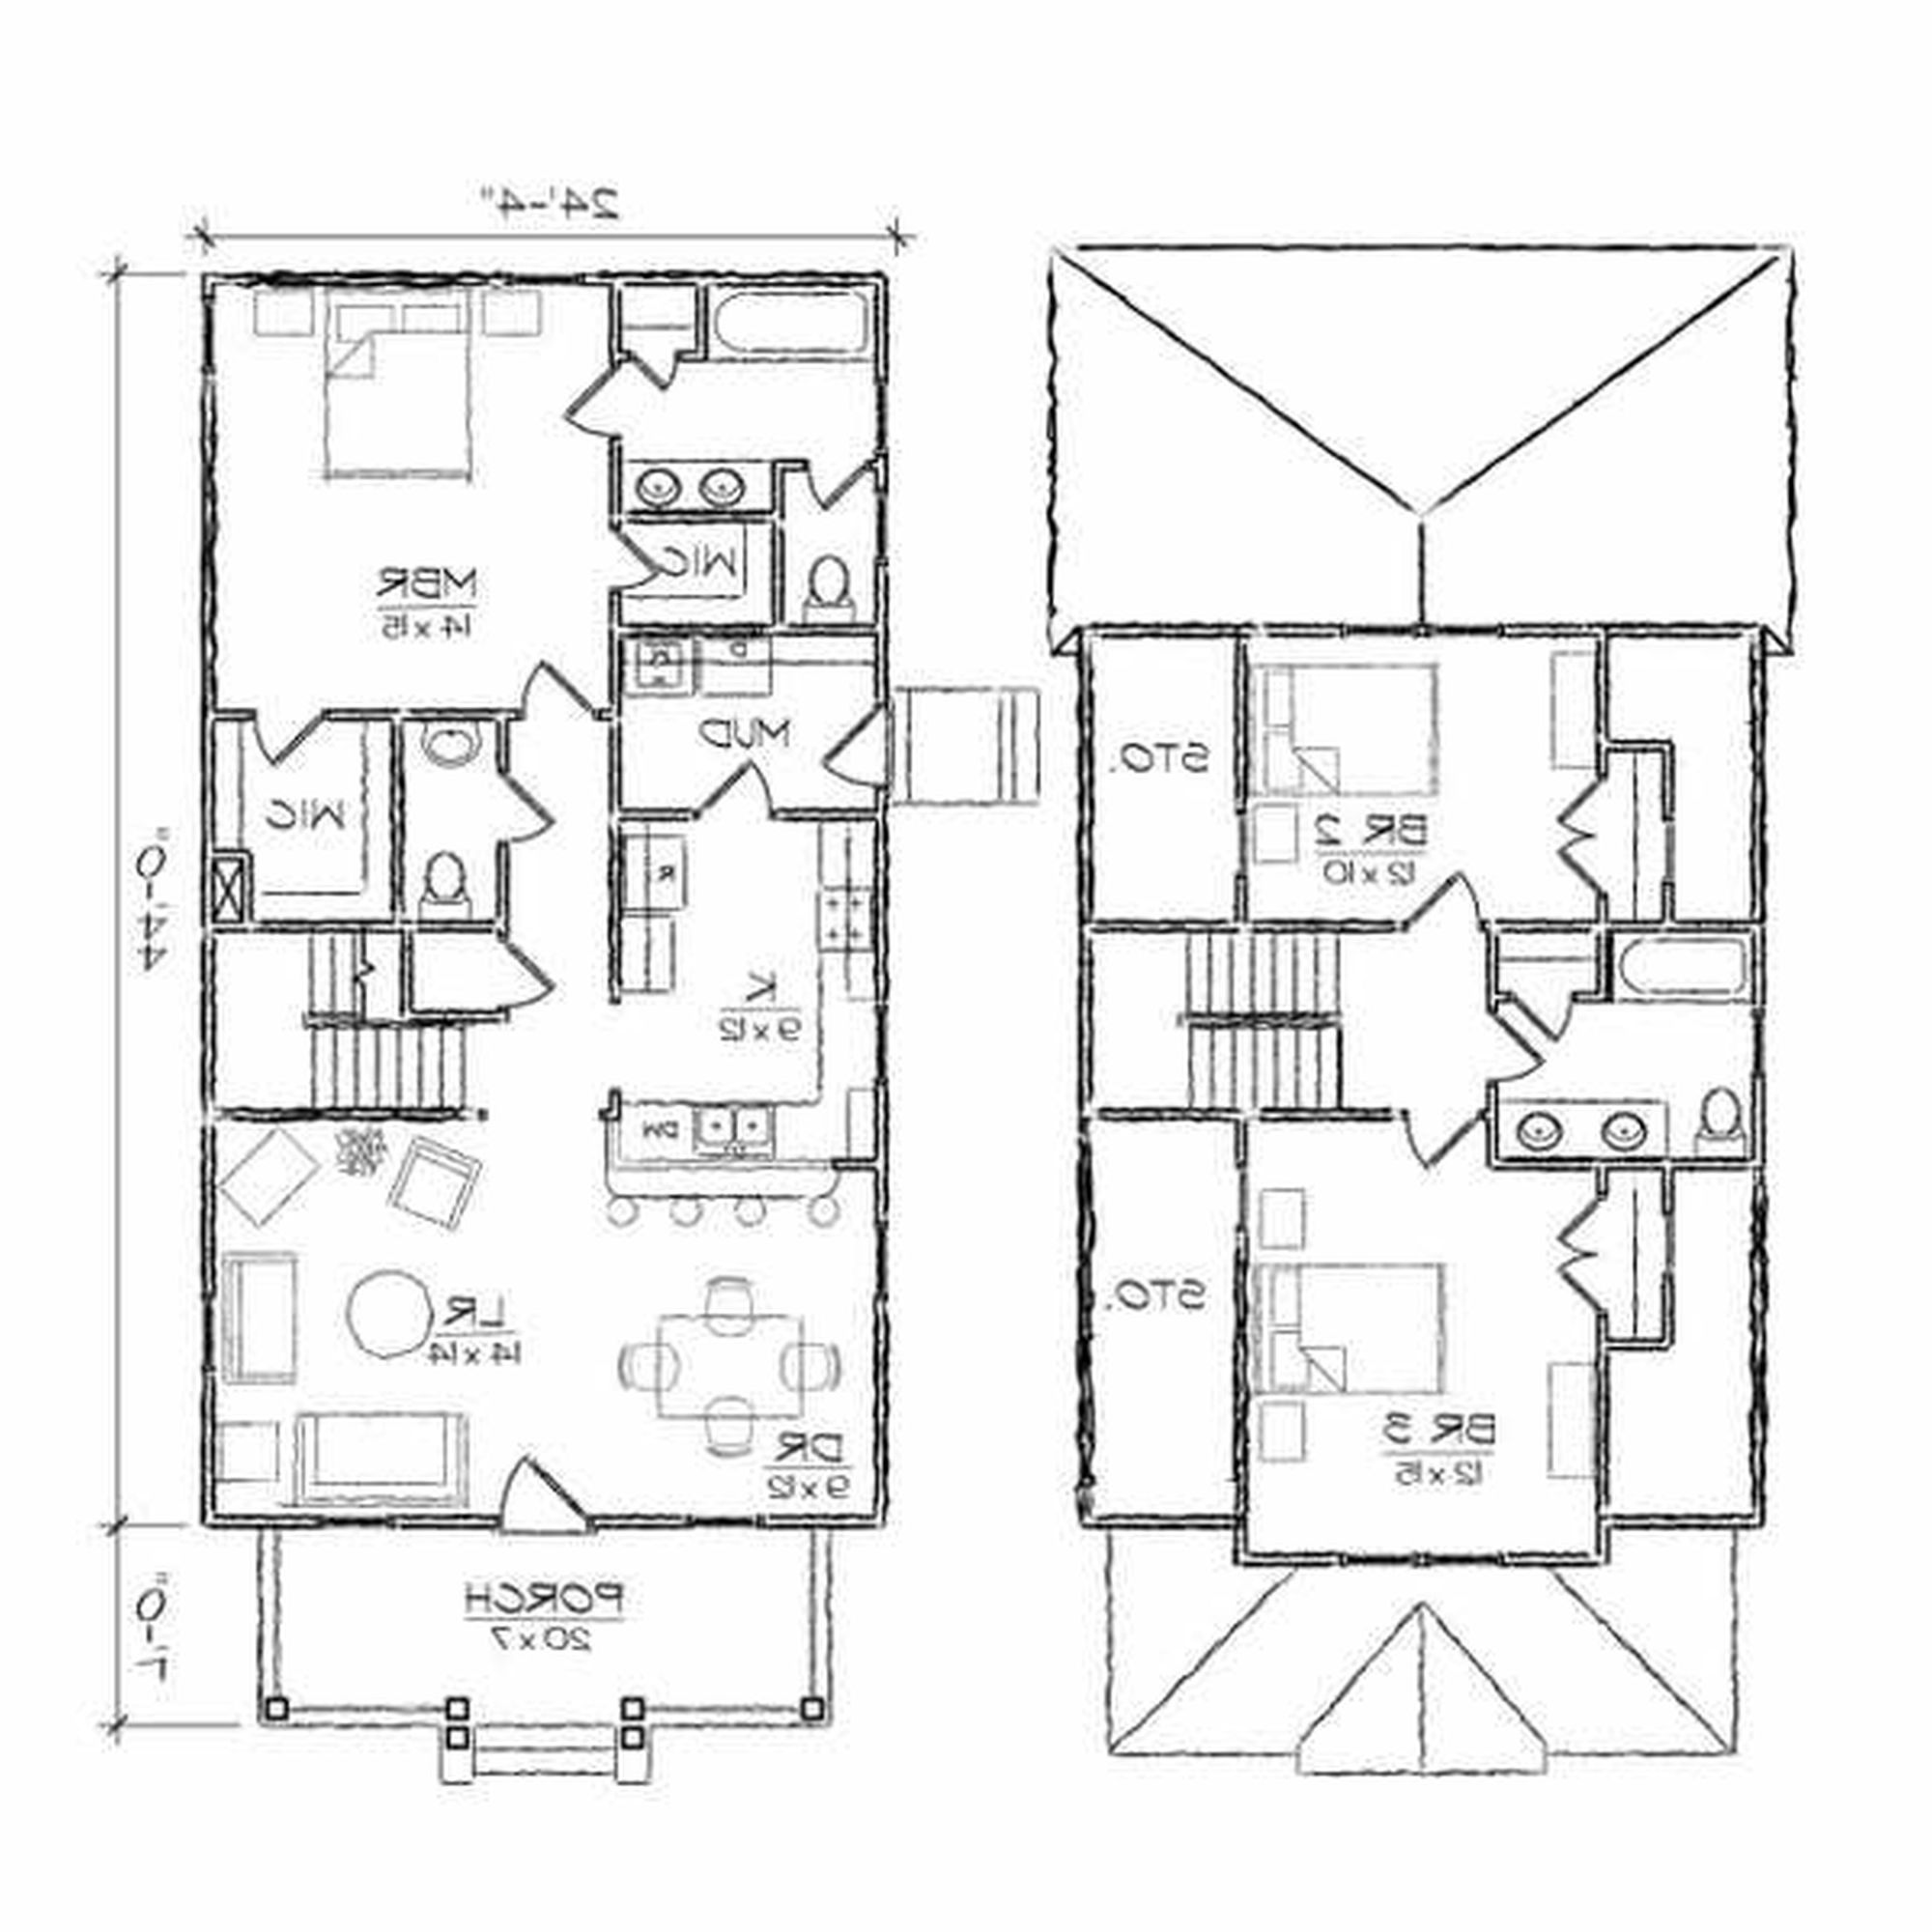 hight resolution of 5000x5000 home plan sketch tiny electric generator diagram